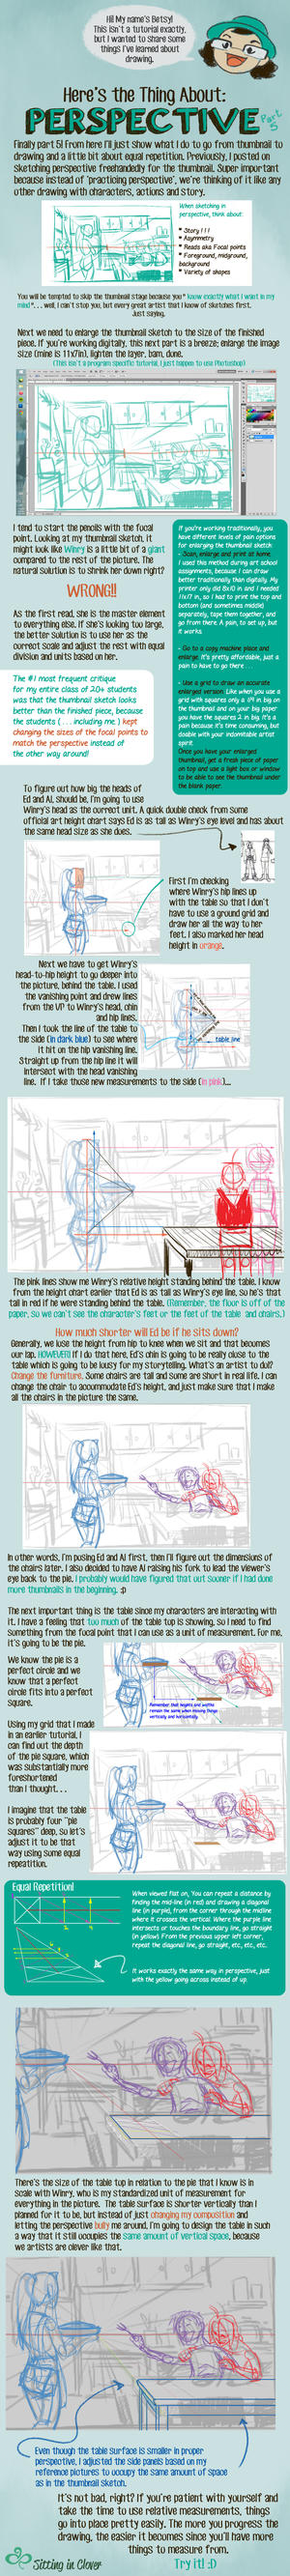 05 Here's the Thing About 1pt Perspective by betsyillustration